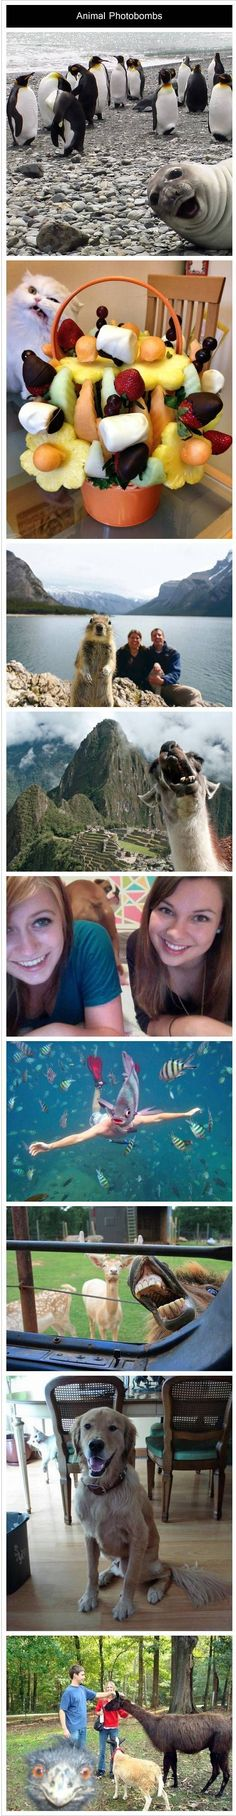 Animal photobombs. Haha these are great :)